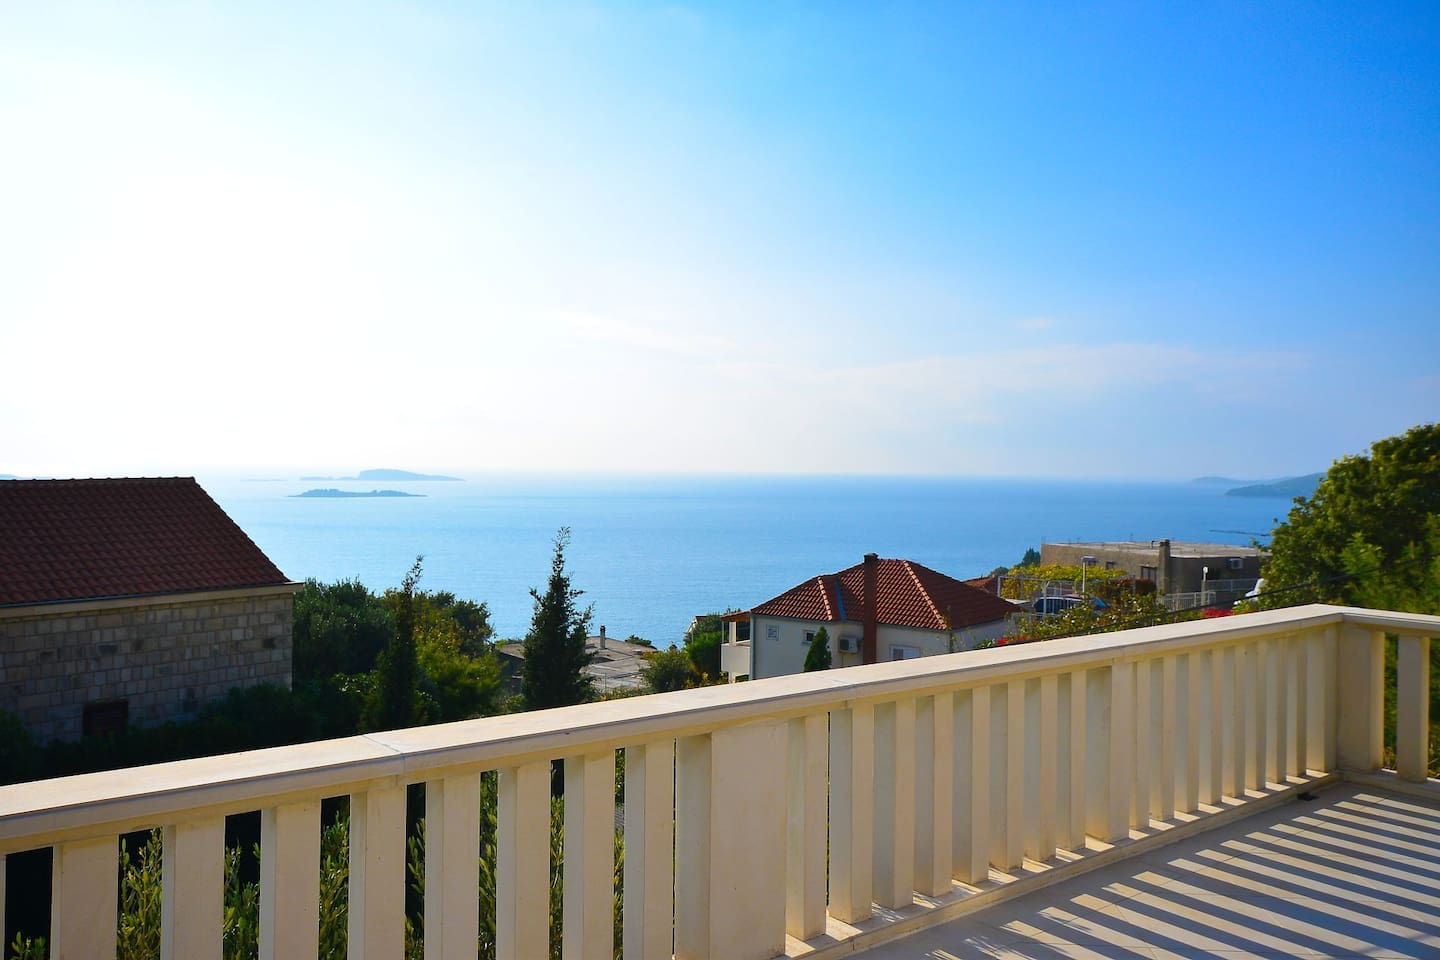 Sea from the apartments terace